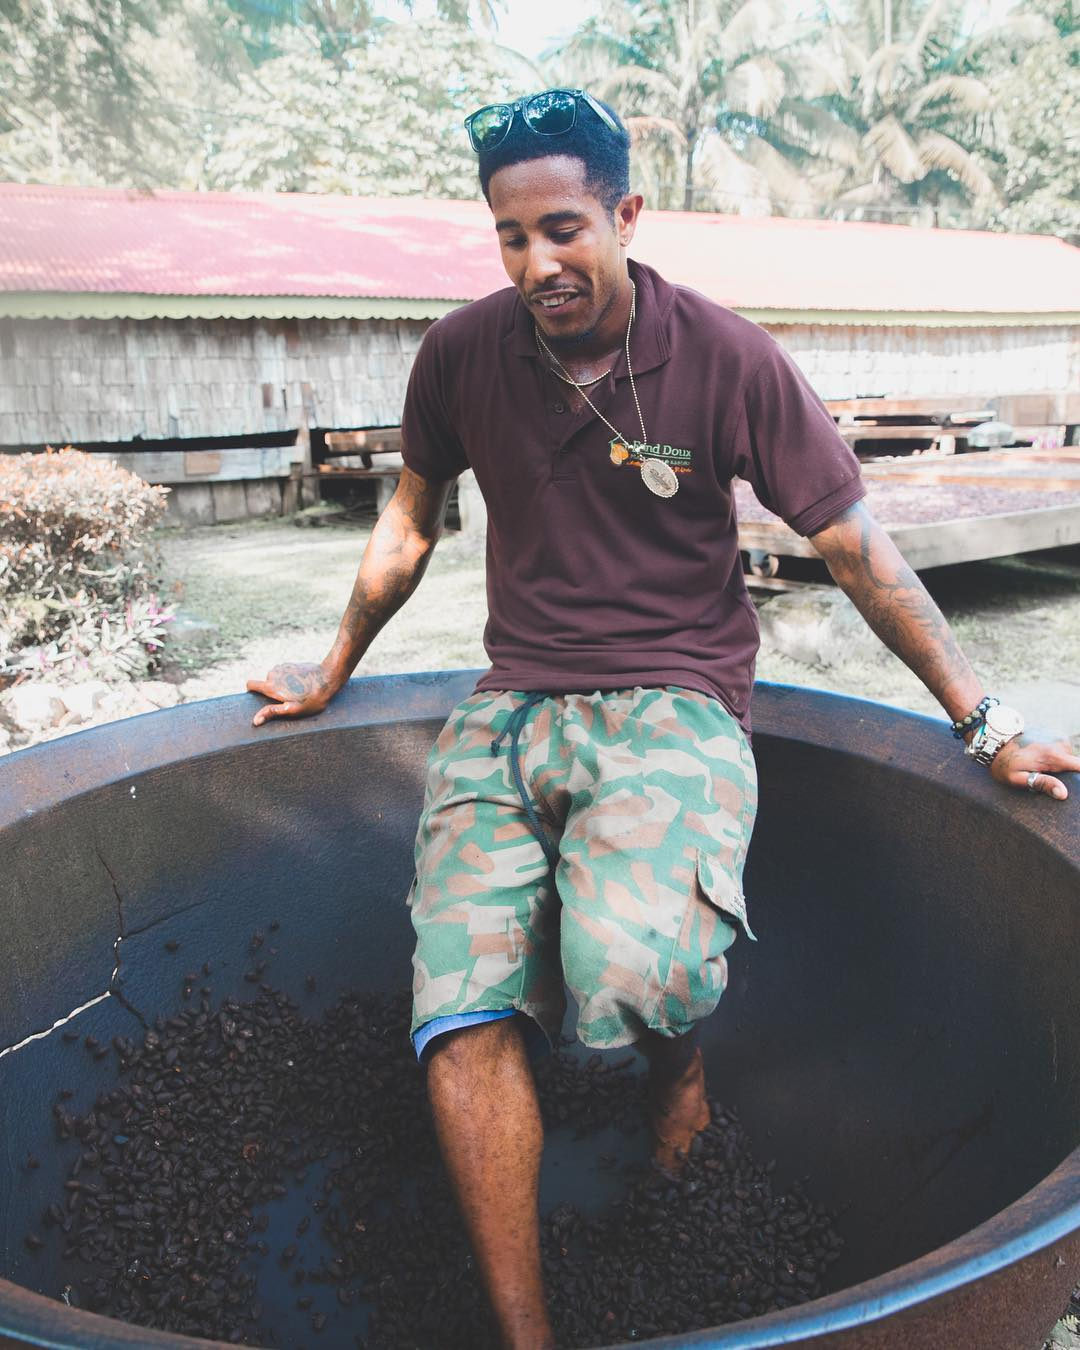 'Seven Minutes in Saint Lucia' Virtual Series Takes You There During Lockdown! Cocoa Tea